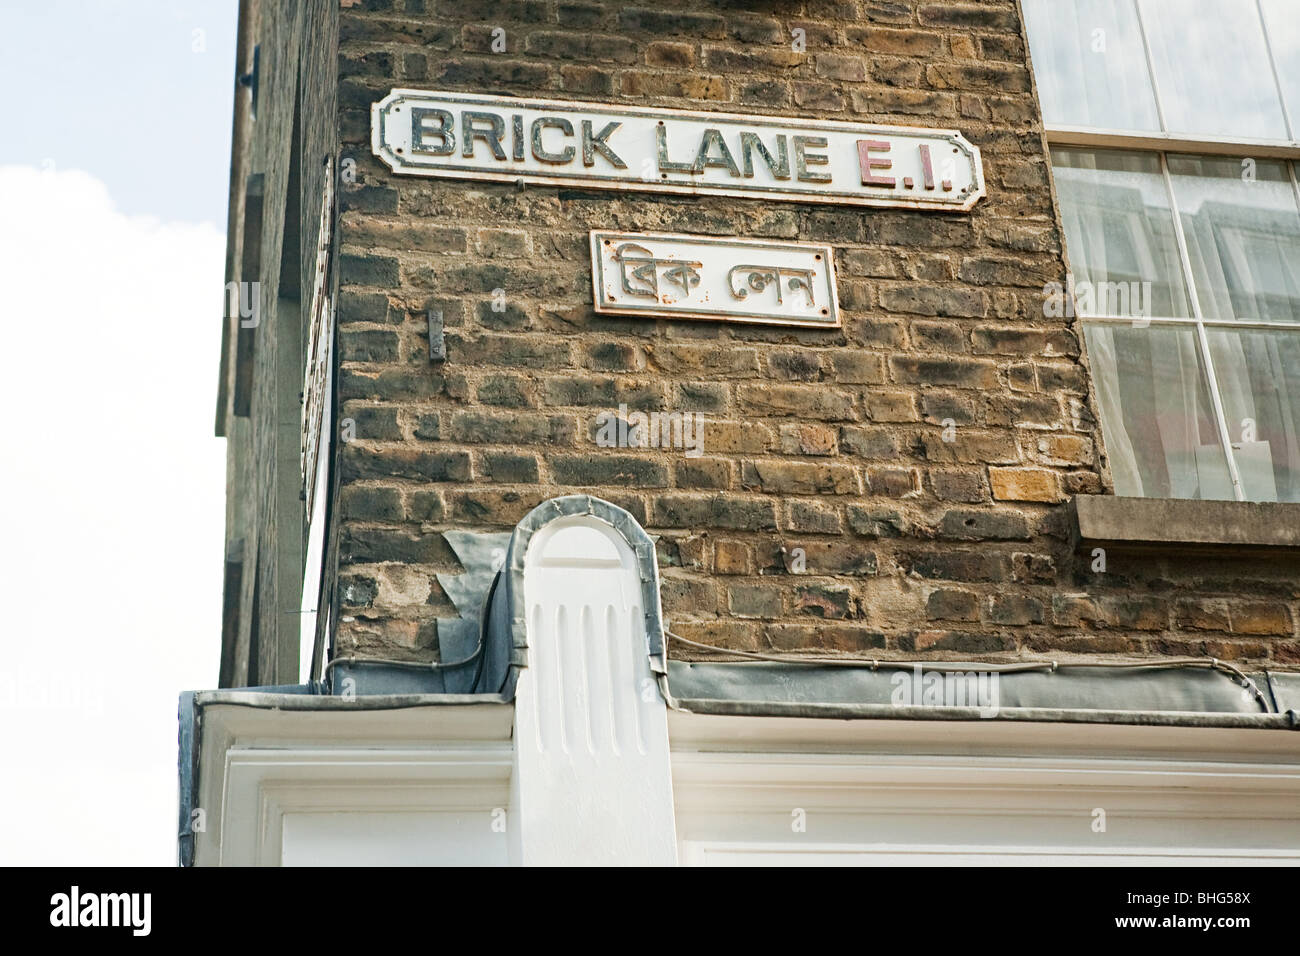 A brick lane road sign - Stock Image